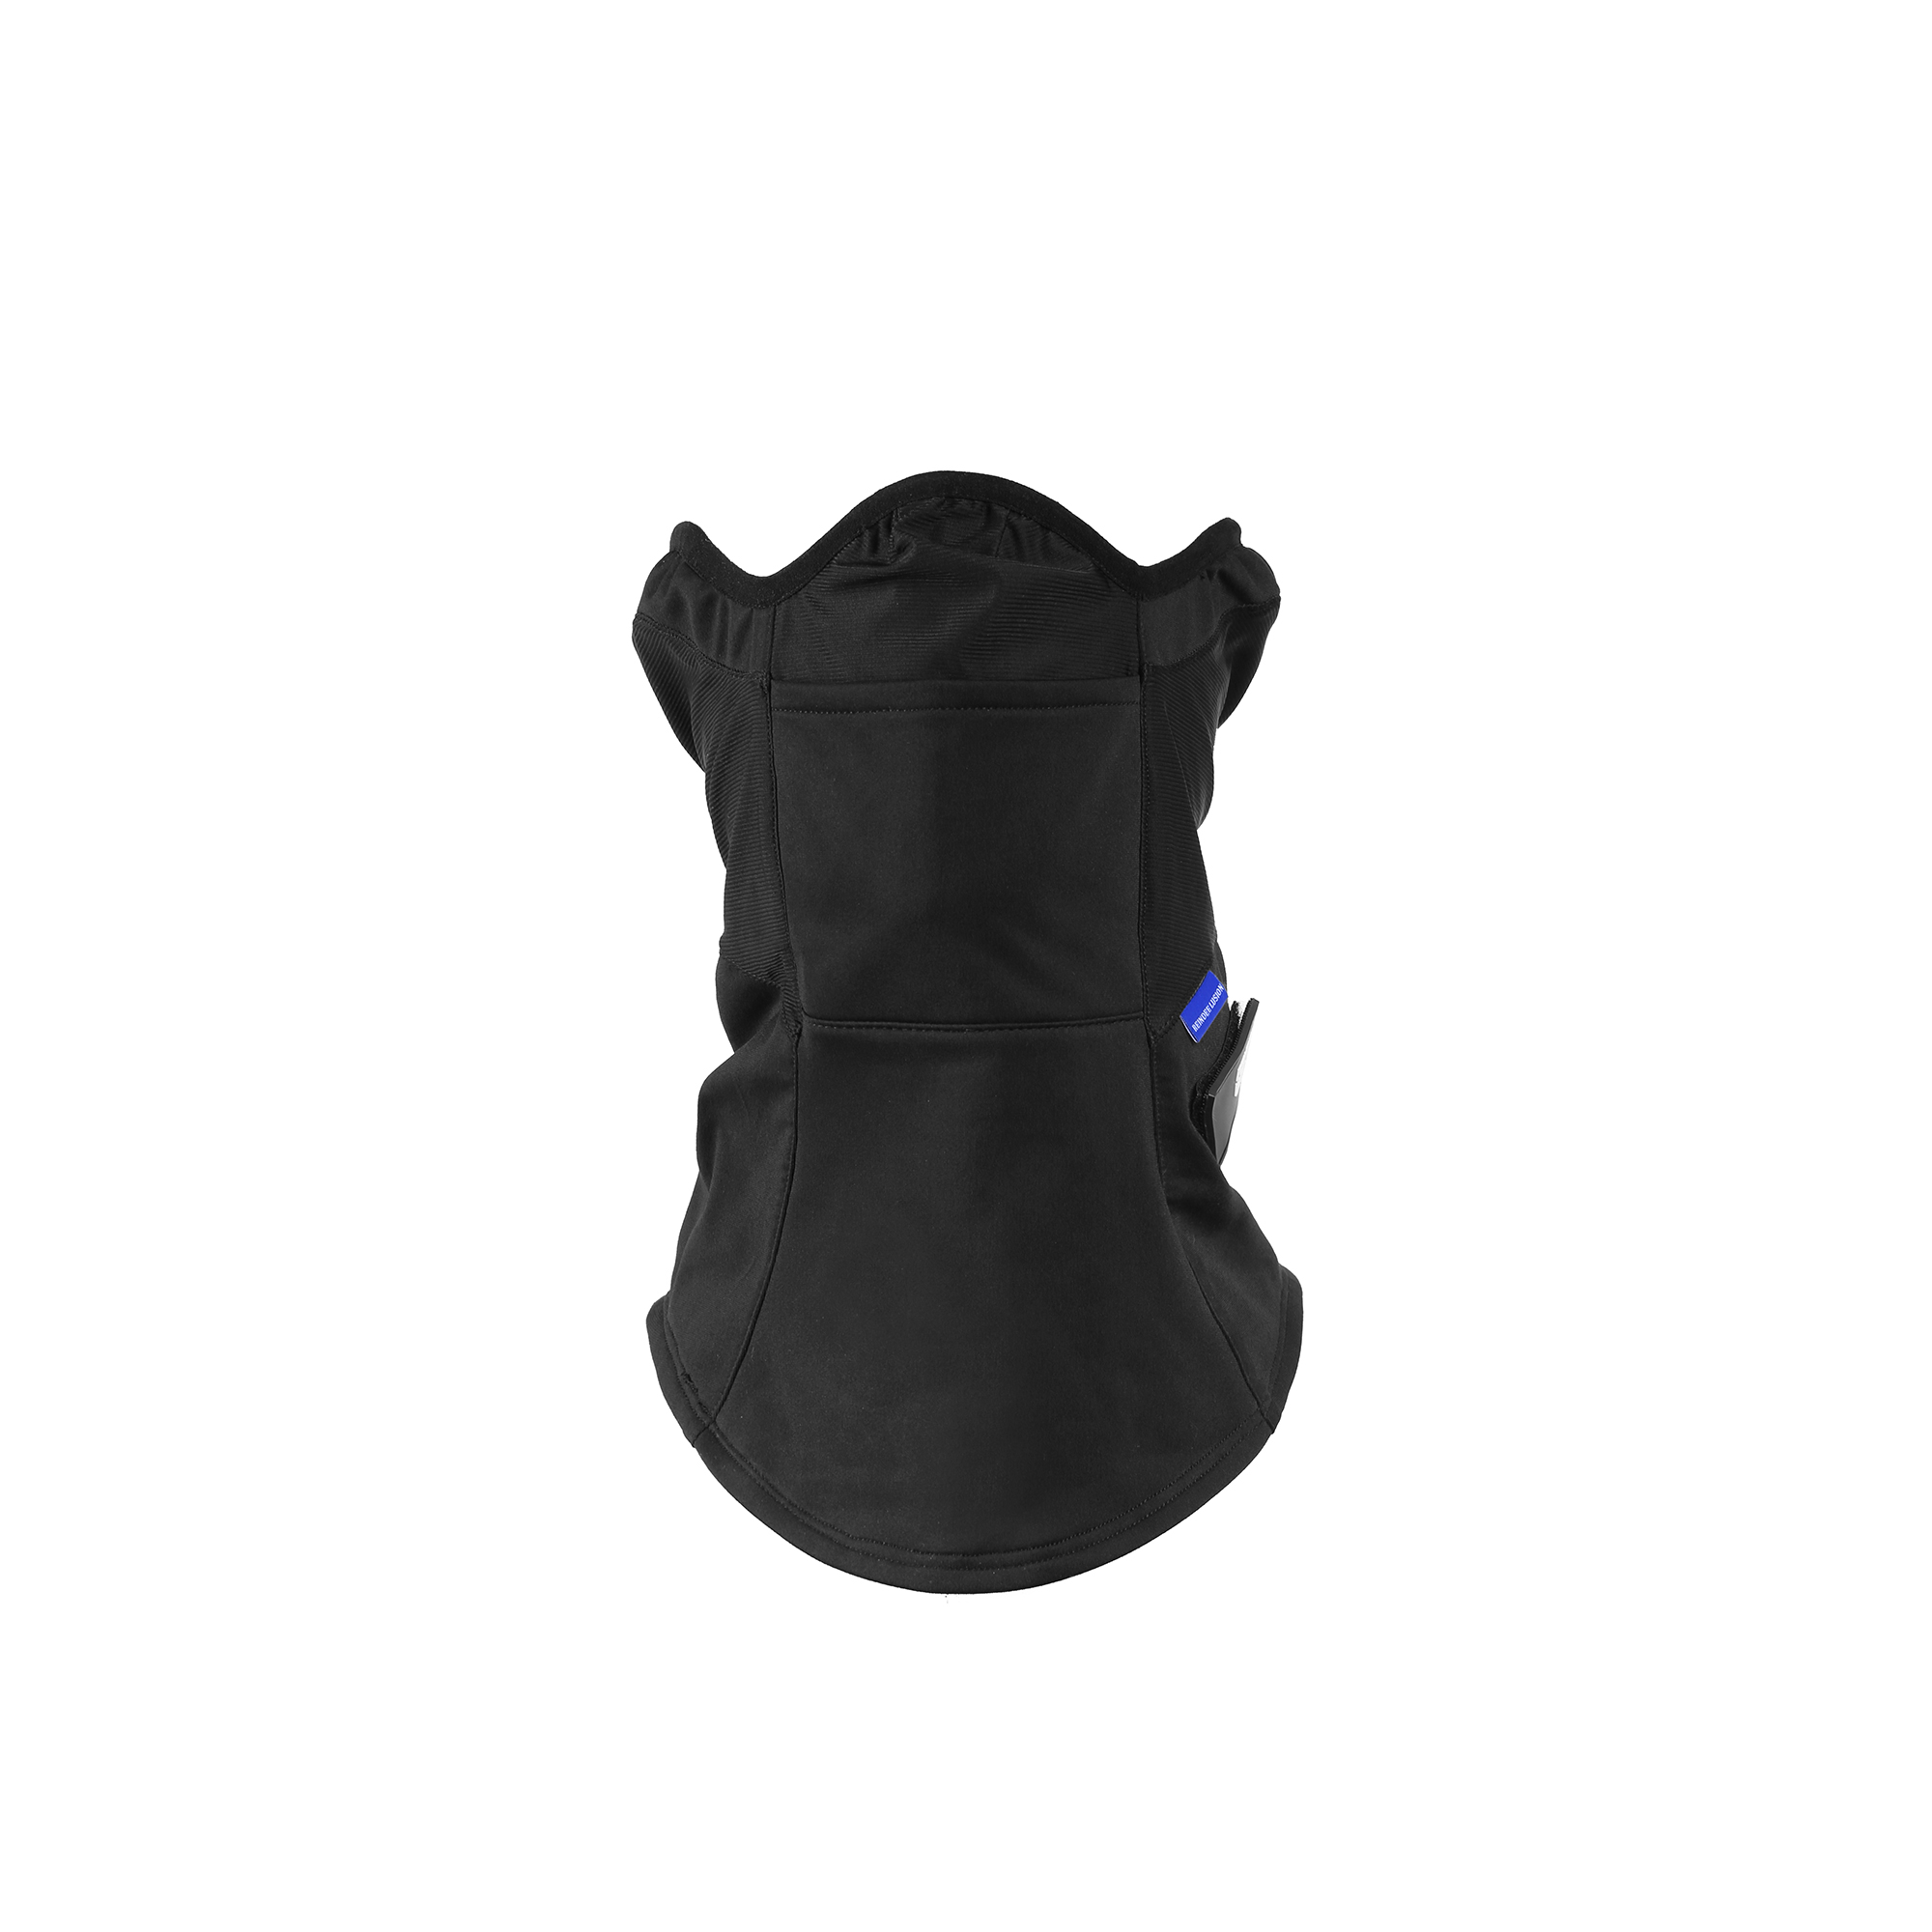 RL) REINDEE LUSION 20FW 3-in-1 windproof outdoor function sports neck mask